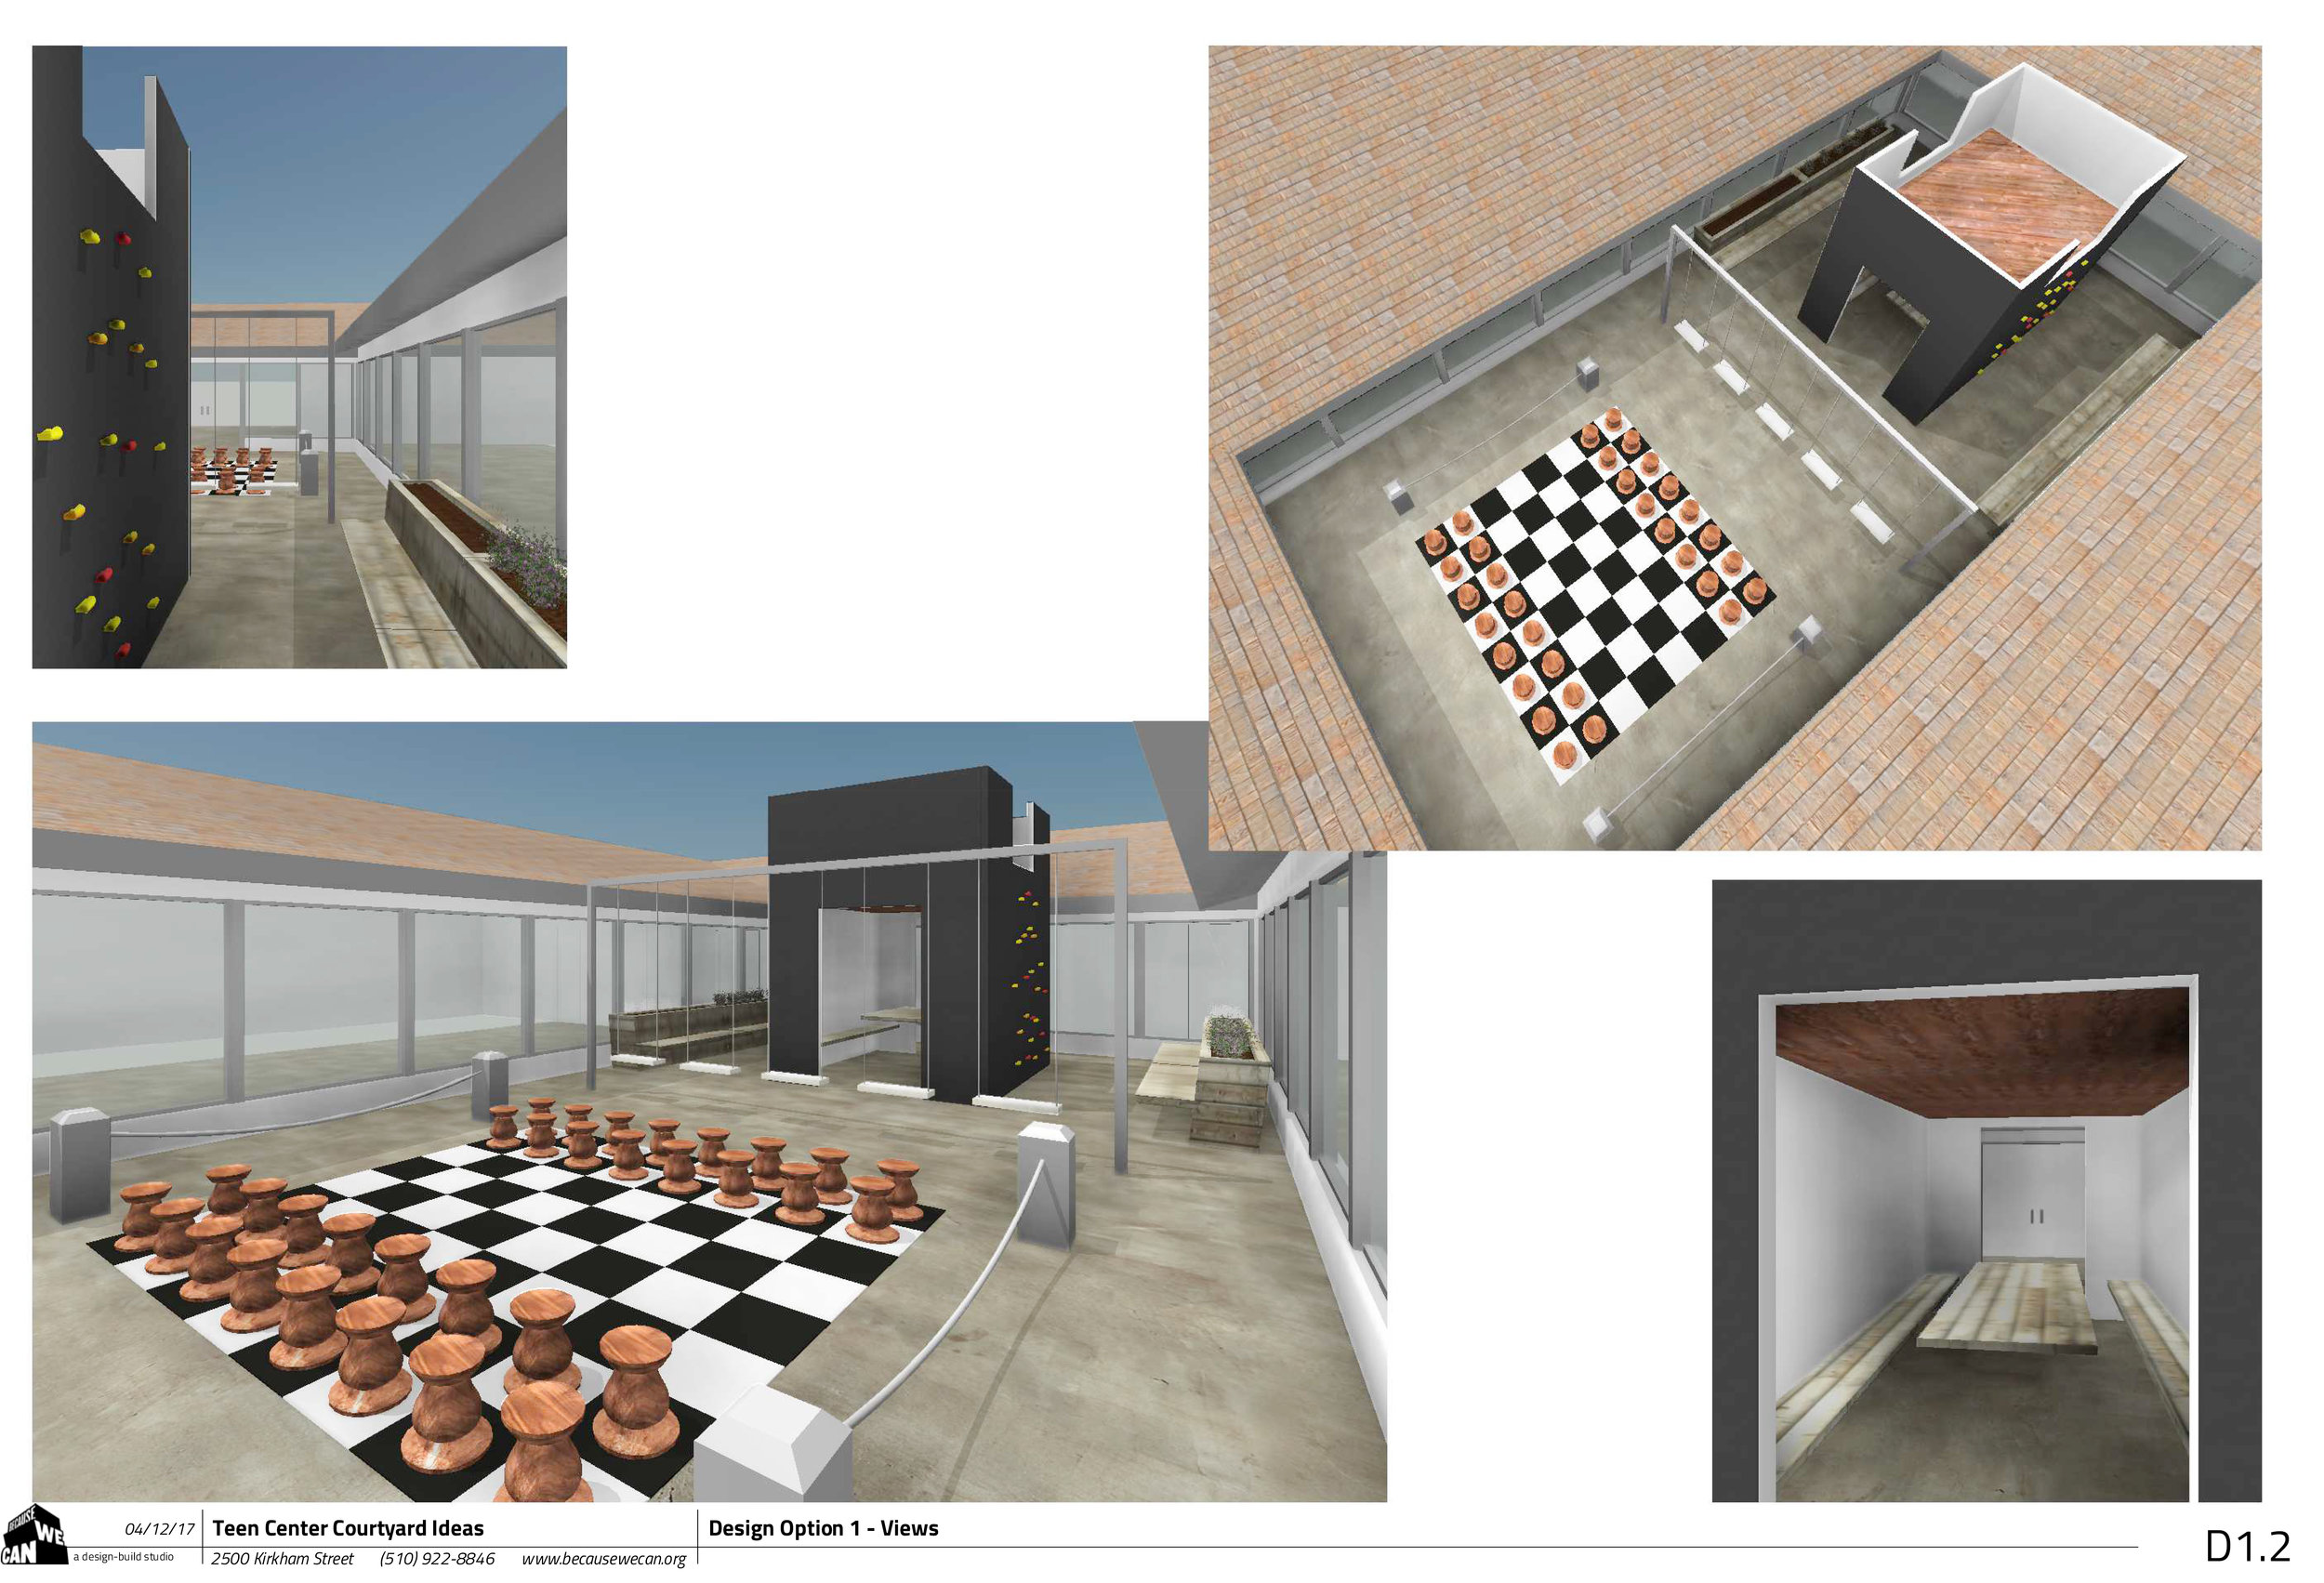 041817_Courtyard Initial Designs-3.jpg